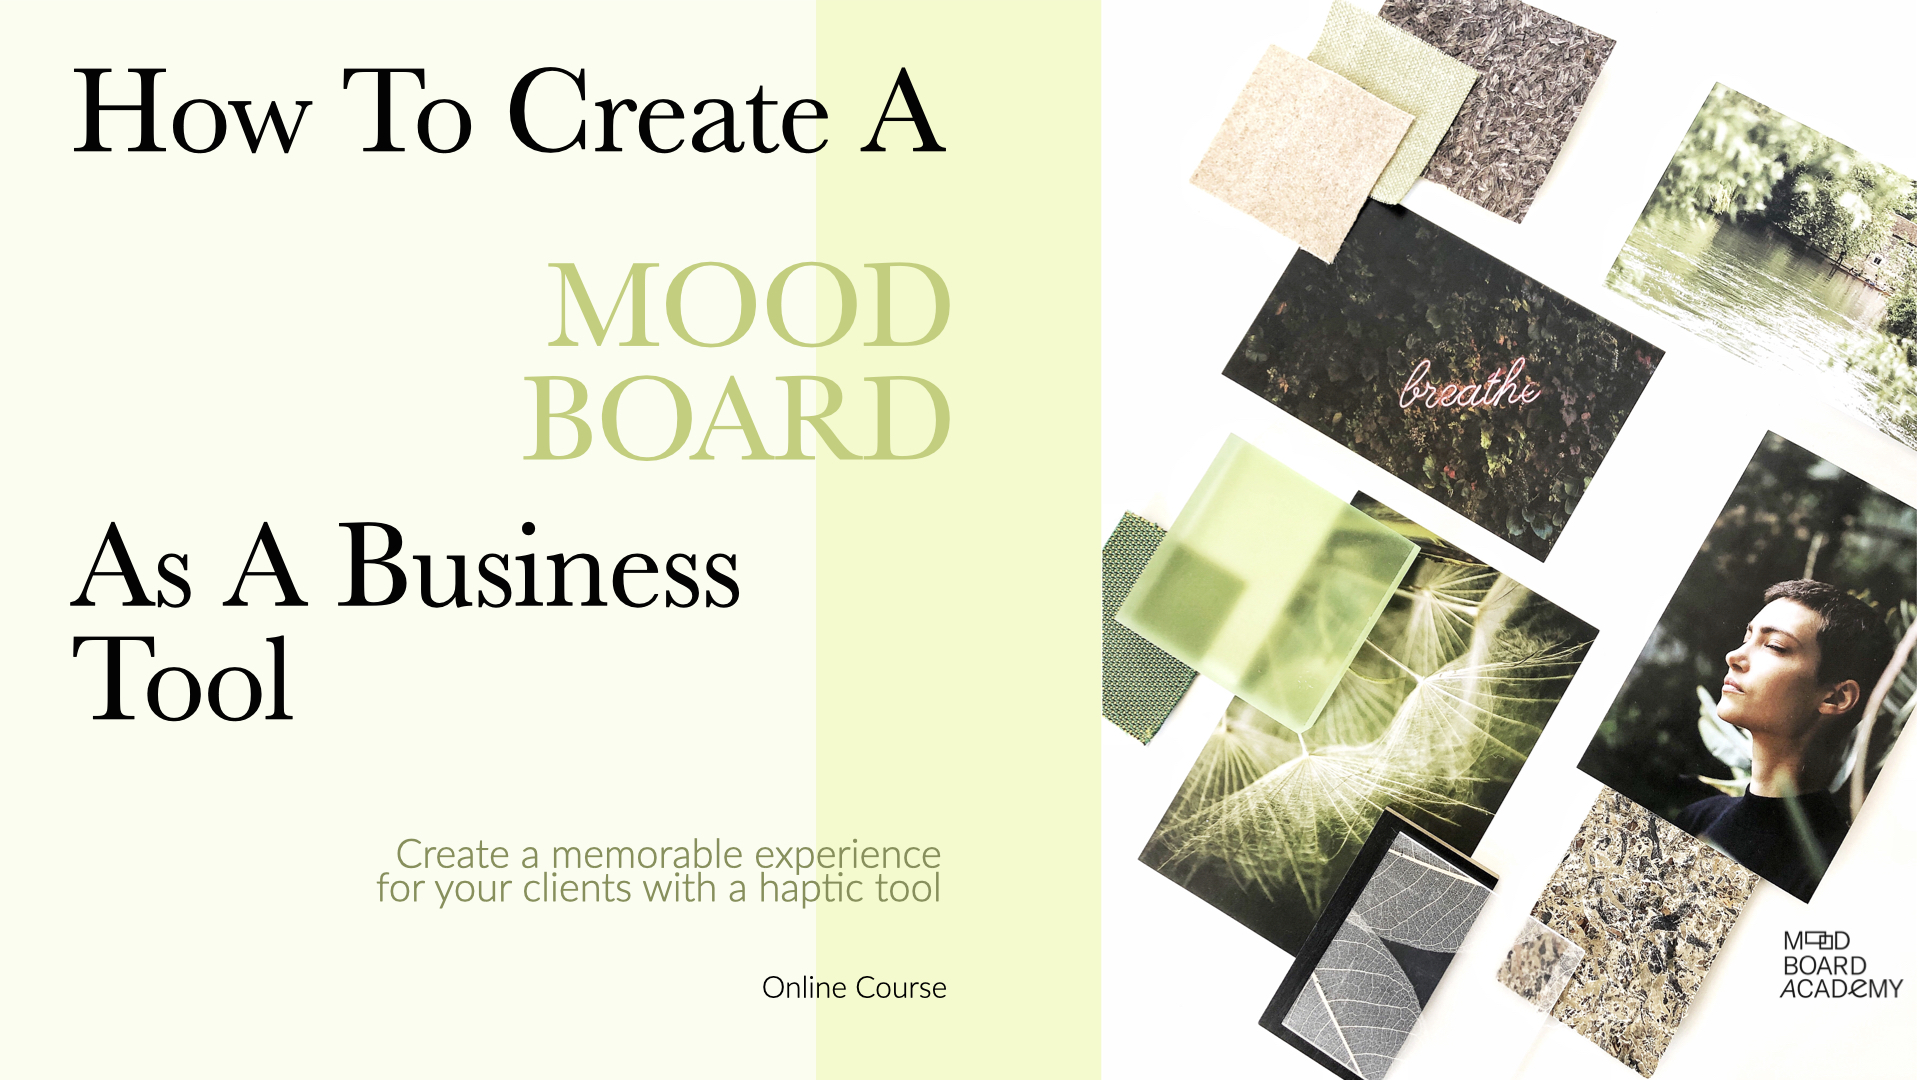 Online Course Mood Board Academy